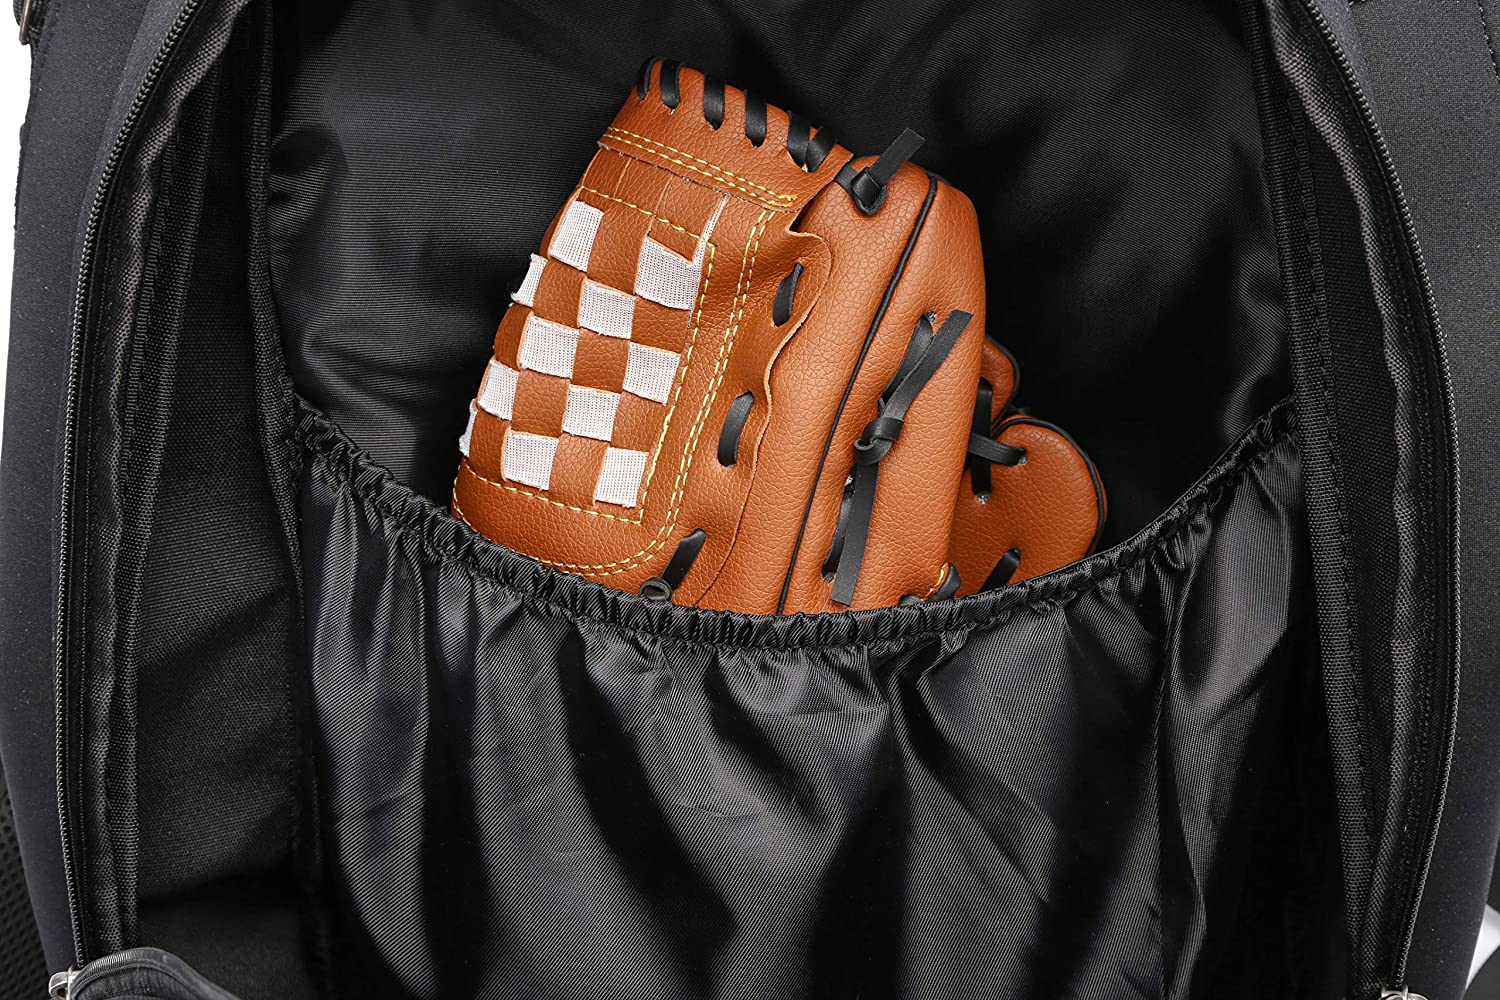 Baseball Backpack with Fence Hook Holds Bat T-Ball Softball Equipment Gear for Youth and Adults Shoes Helmet Thinksea Baseball Bag Glove